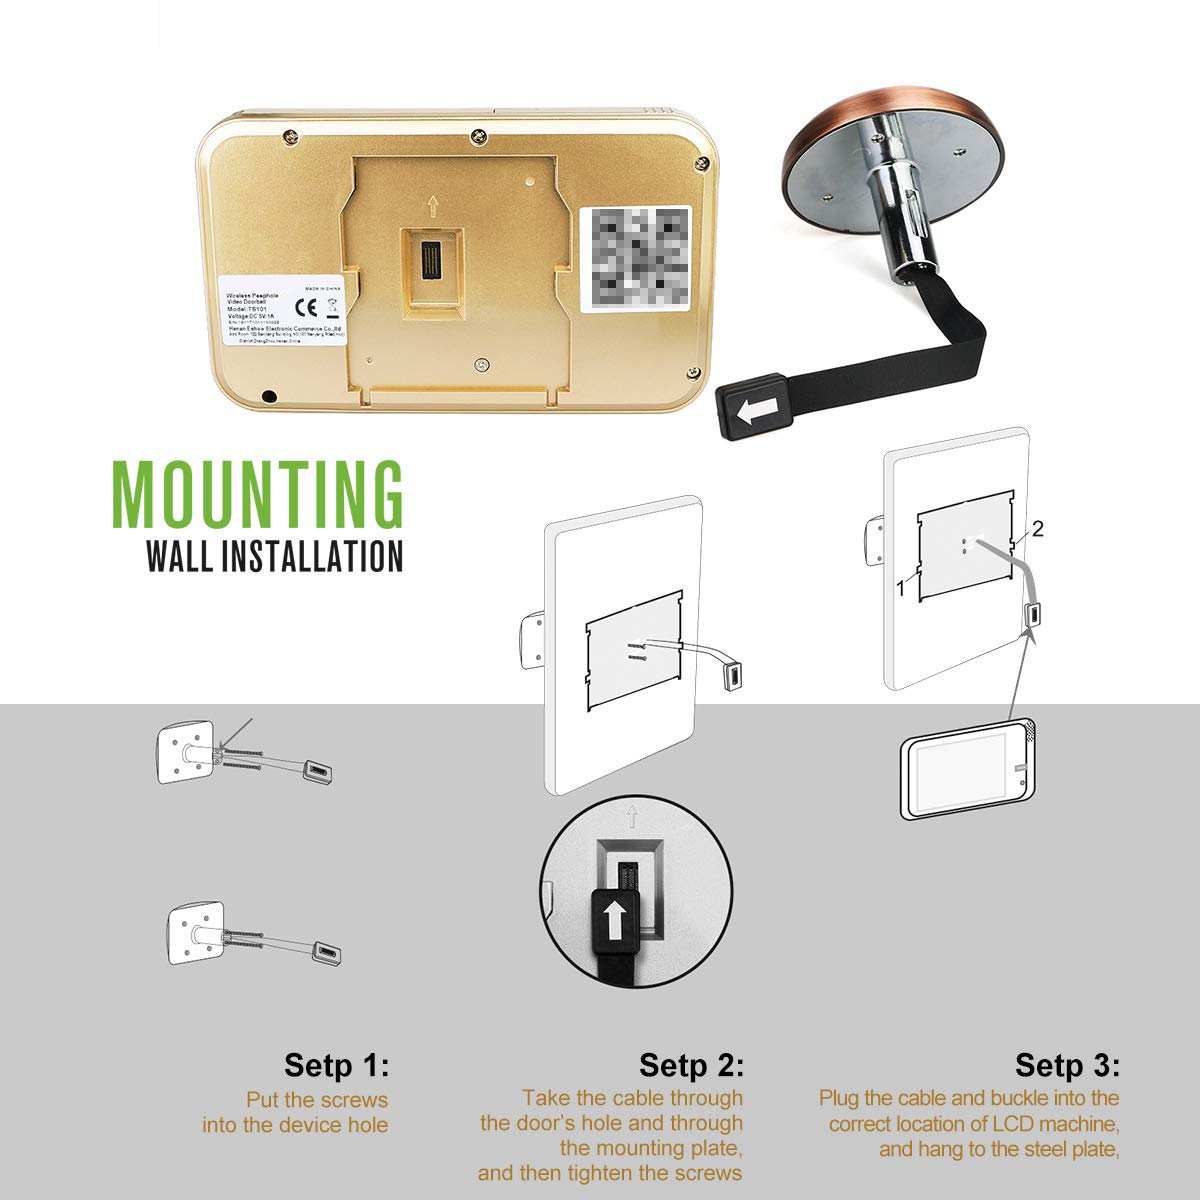 Wireless Digital Door Viewer & Video Doorbell WiFi Peephole Camera Night Vision Motion Detection Security Monitor 120° Wide Angle Lens Viewing for Front Door by Fxwj (Image #7)